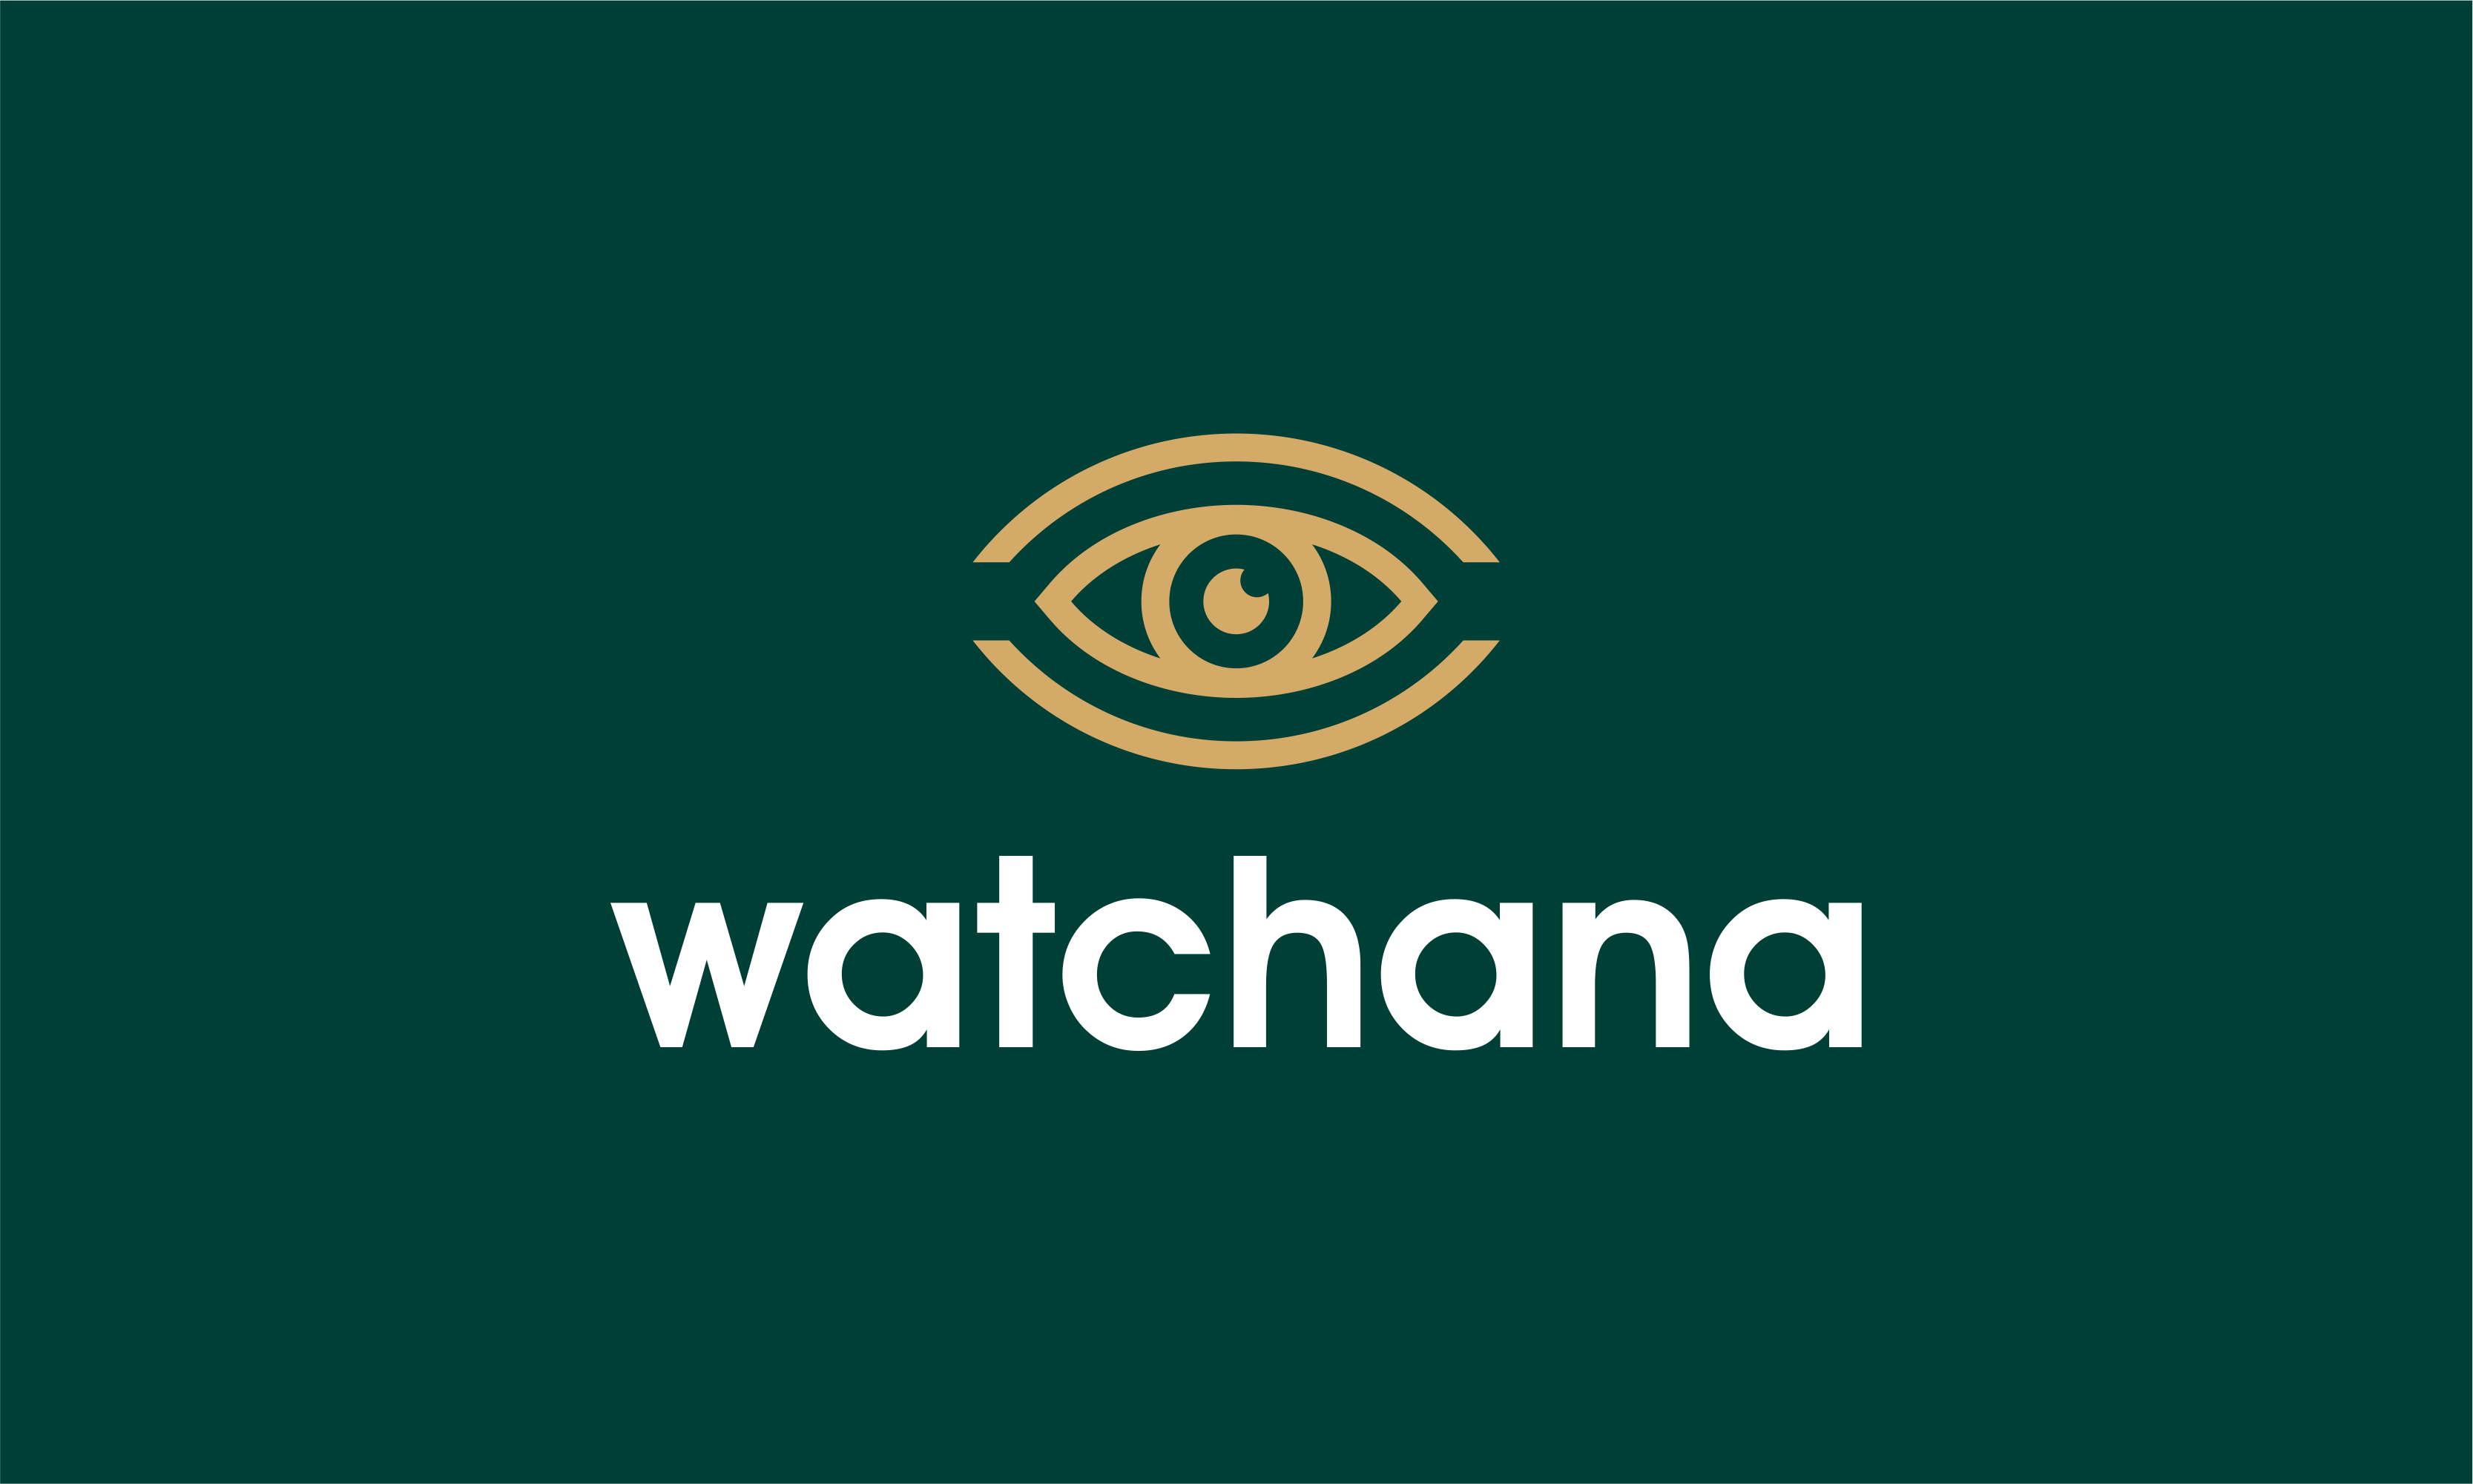 Watchana - Dating domain name for sale